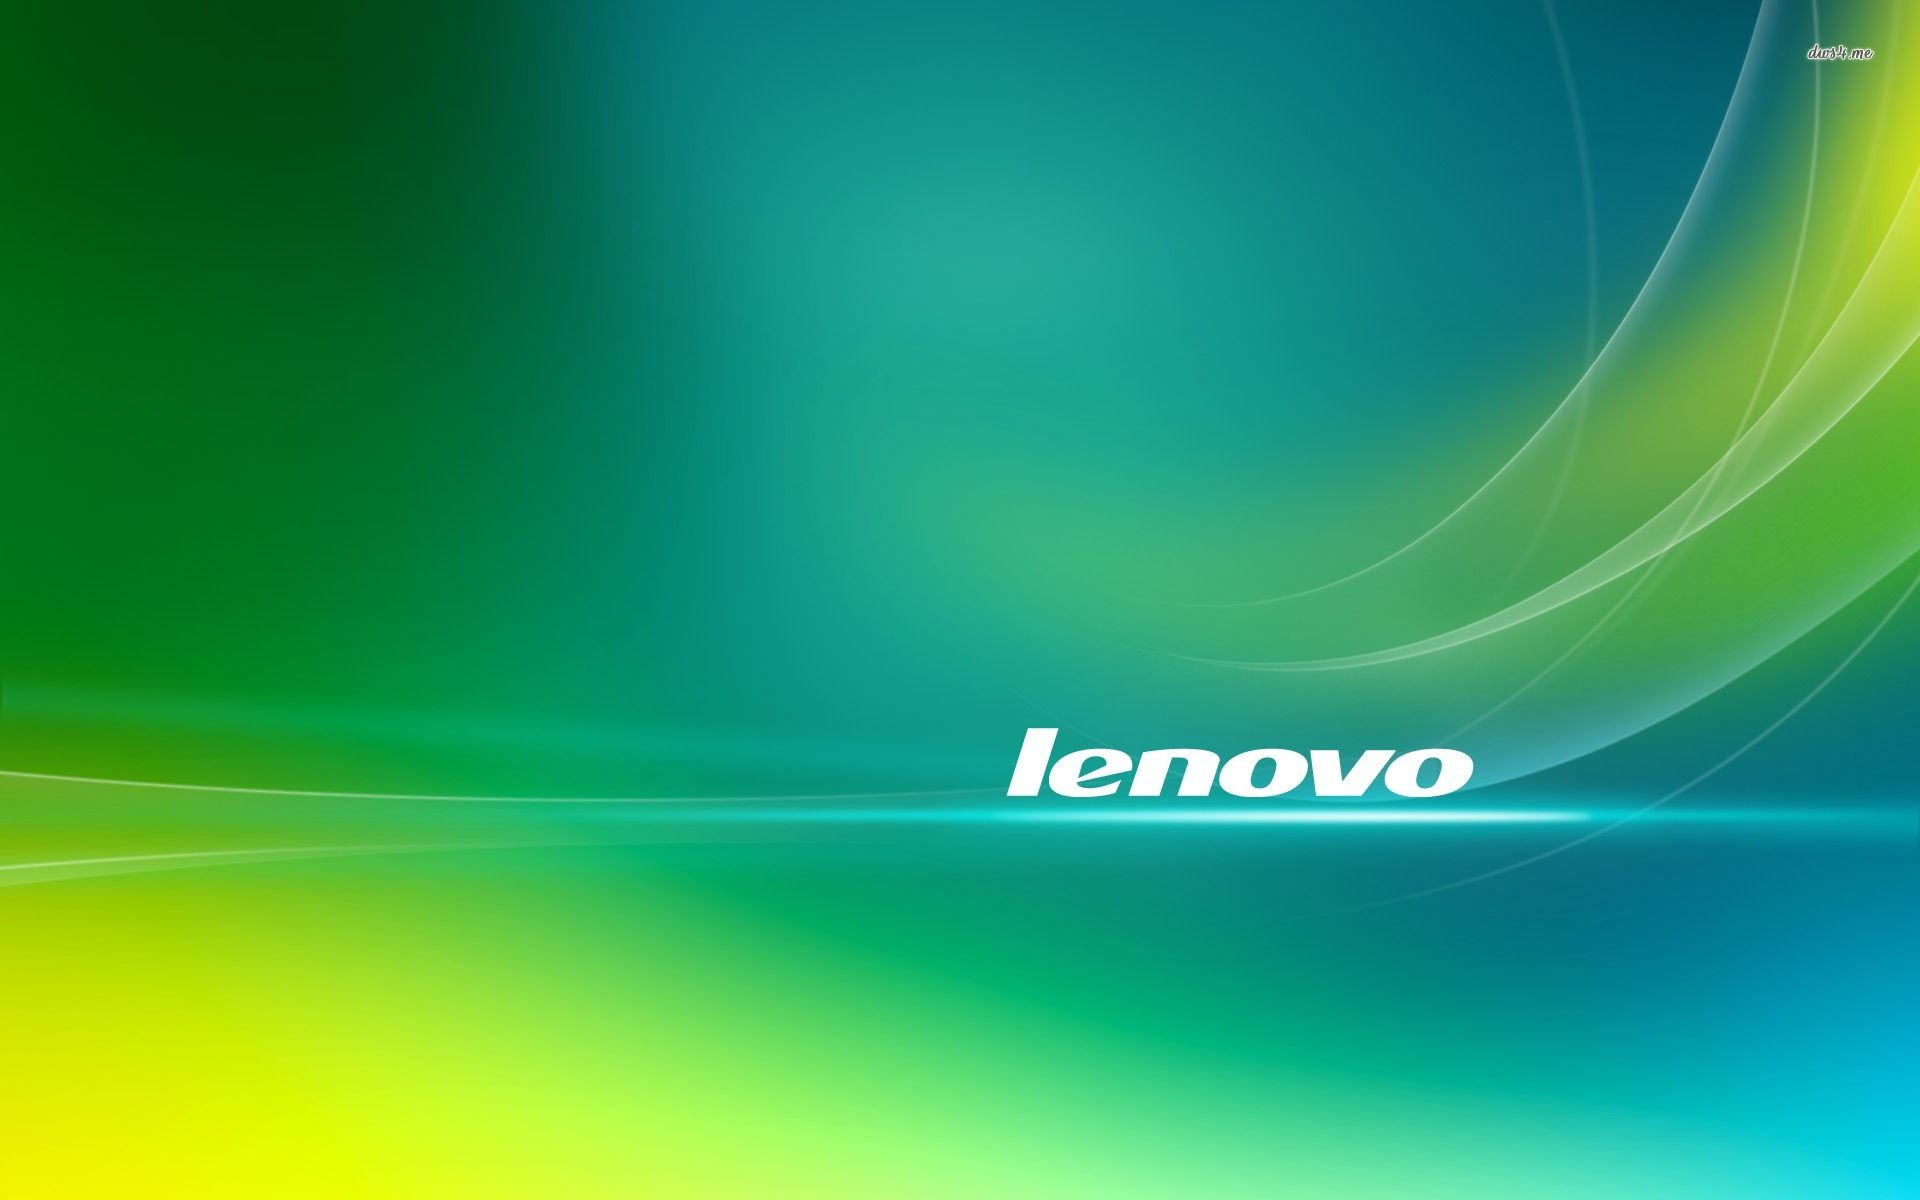 Lenovo Wallpapers - Wallpaper Cave